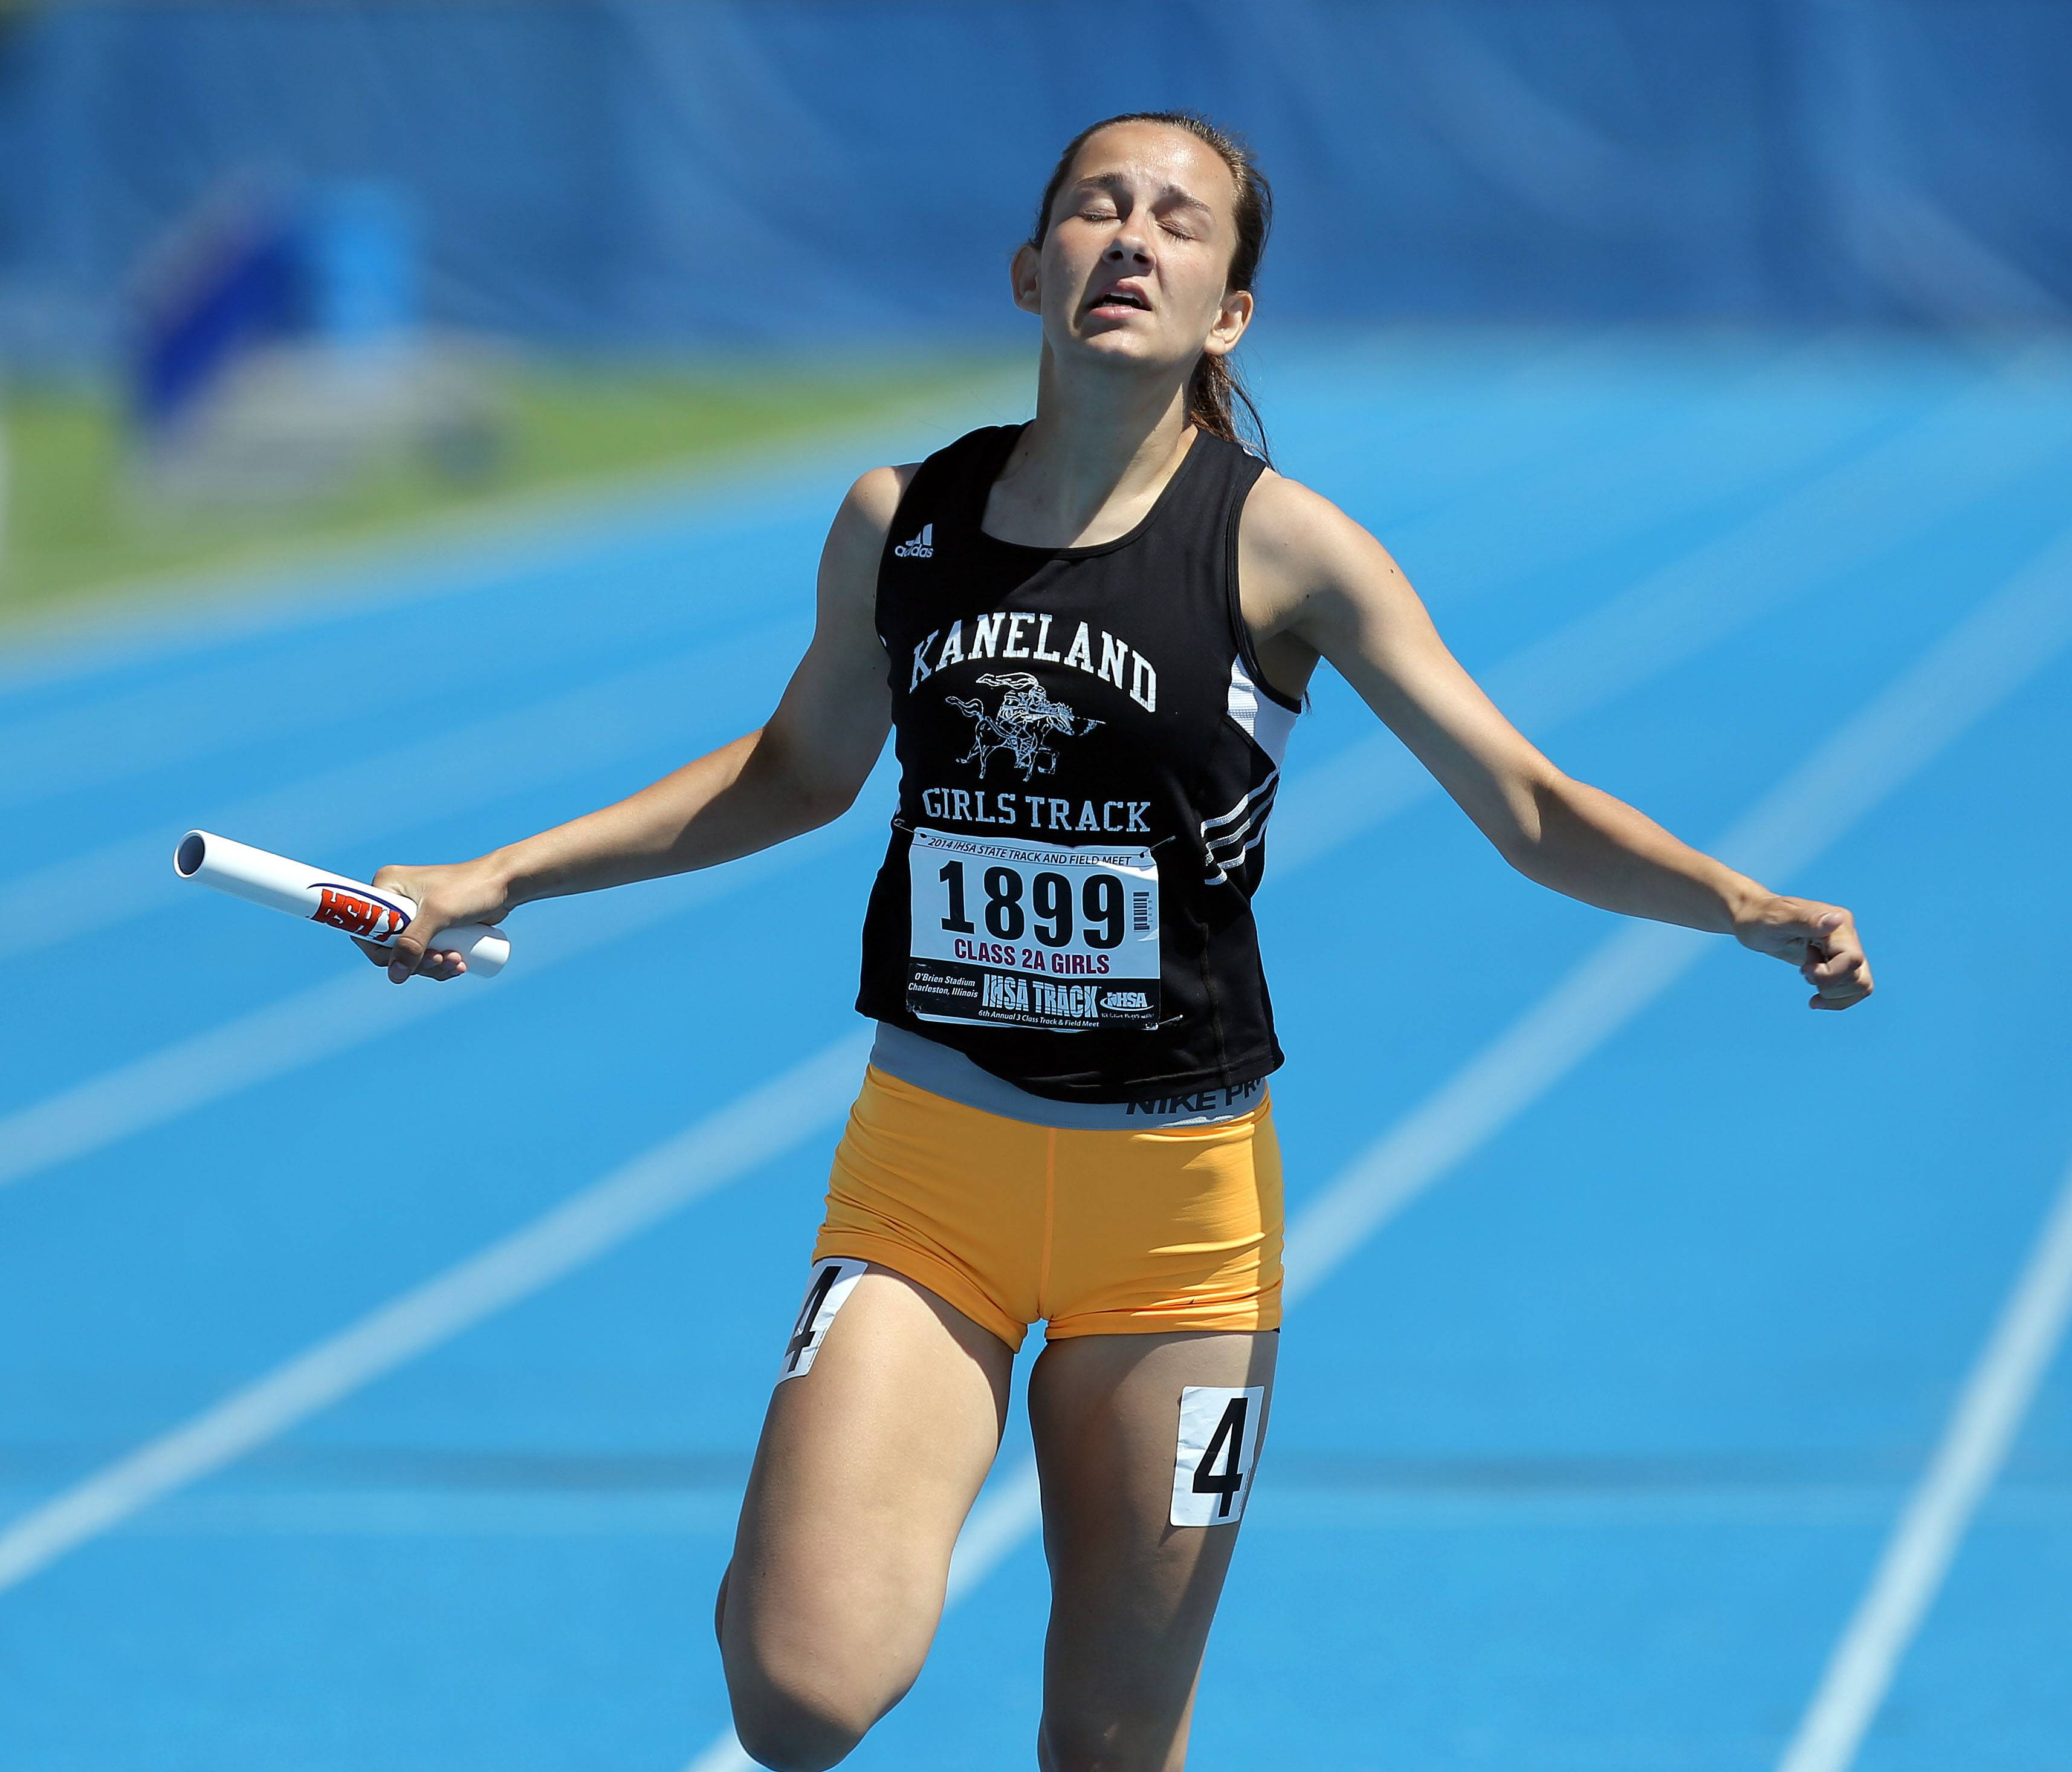 Kaneland's Carly Elliott crosses the finish line in the 4x200-meter relay during the prelims of the girls track and field state meet at Eastern Illinois University in Charleston Friday.